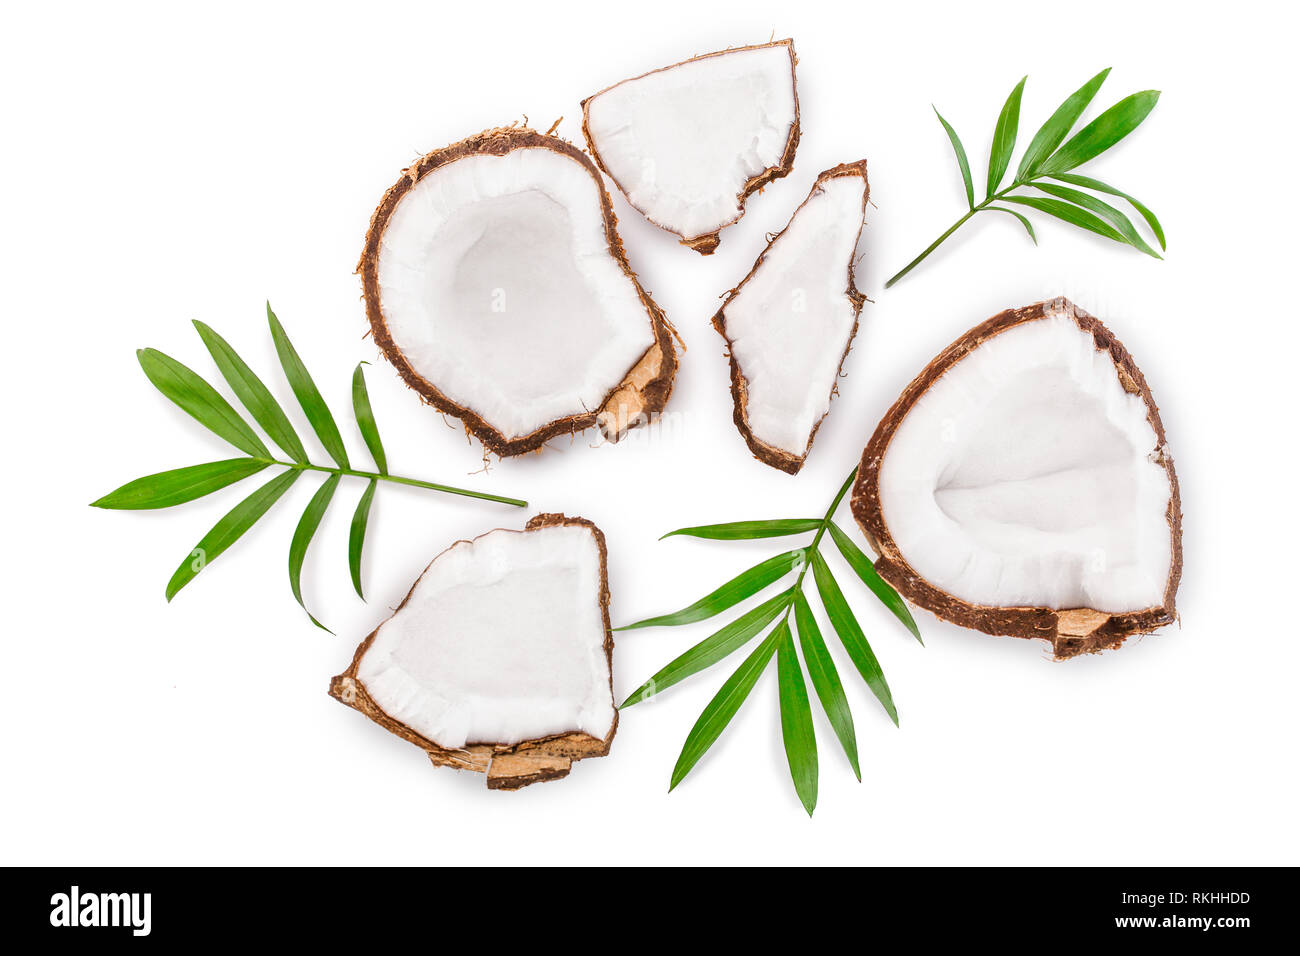 coconut with leaves isolated on white background. Top view. Flat lay - Stock Image